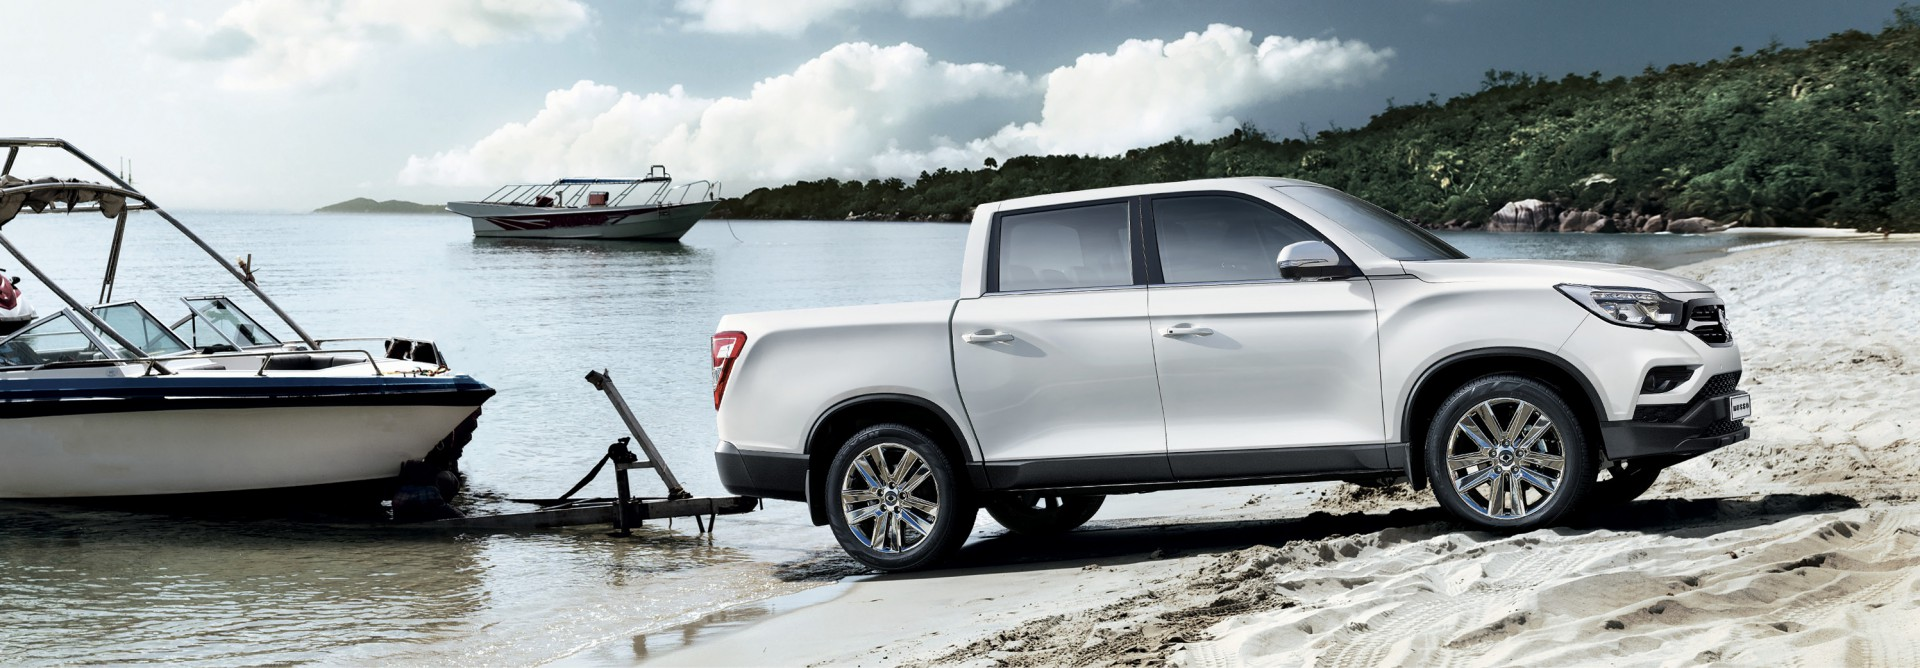 SsangYong Musso - The authentic pick-up